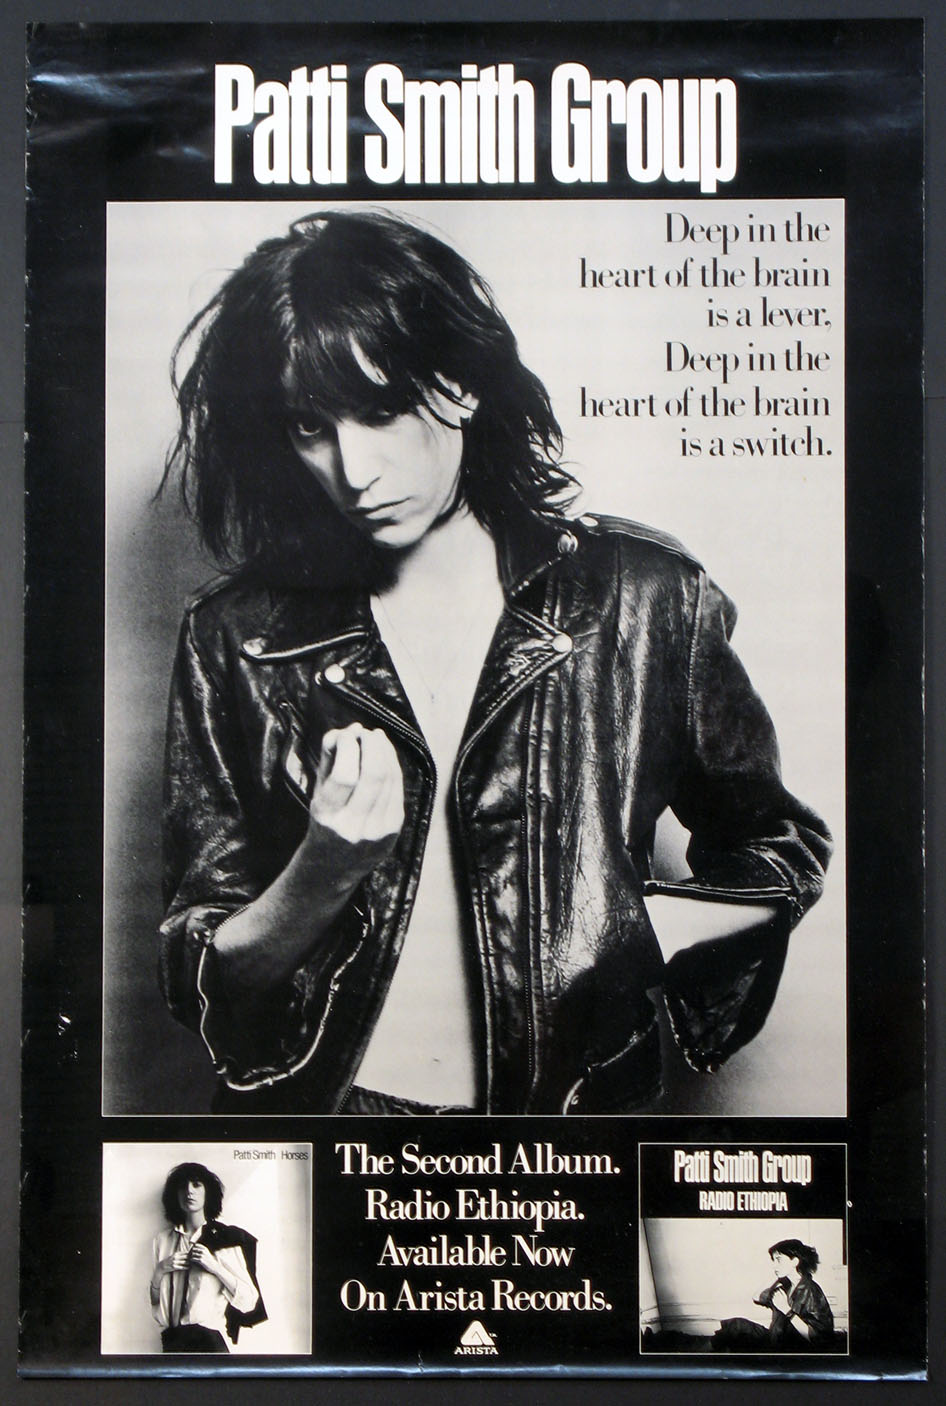 PATTI SMITH RADIO ETHIOPIA ALBUM PROMOTIONAL POSTER FEATURING MAPPLETHORPE PHOTO @ FilmPosters.com